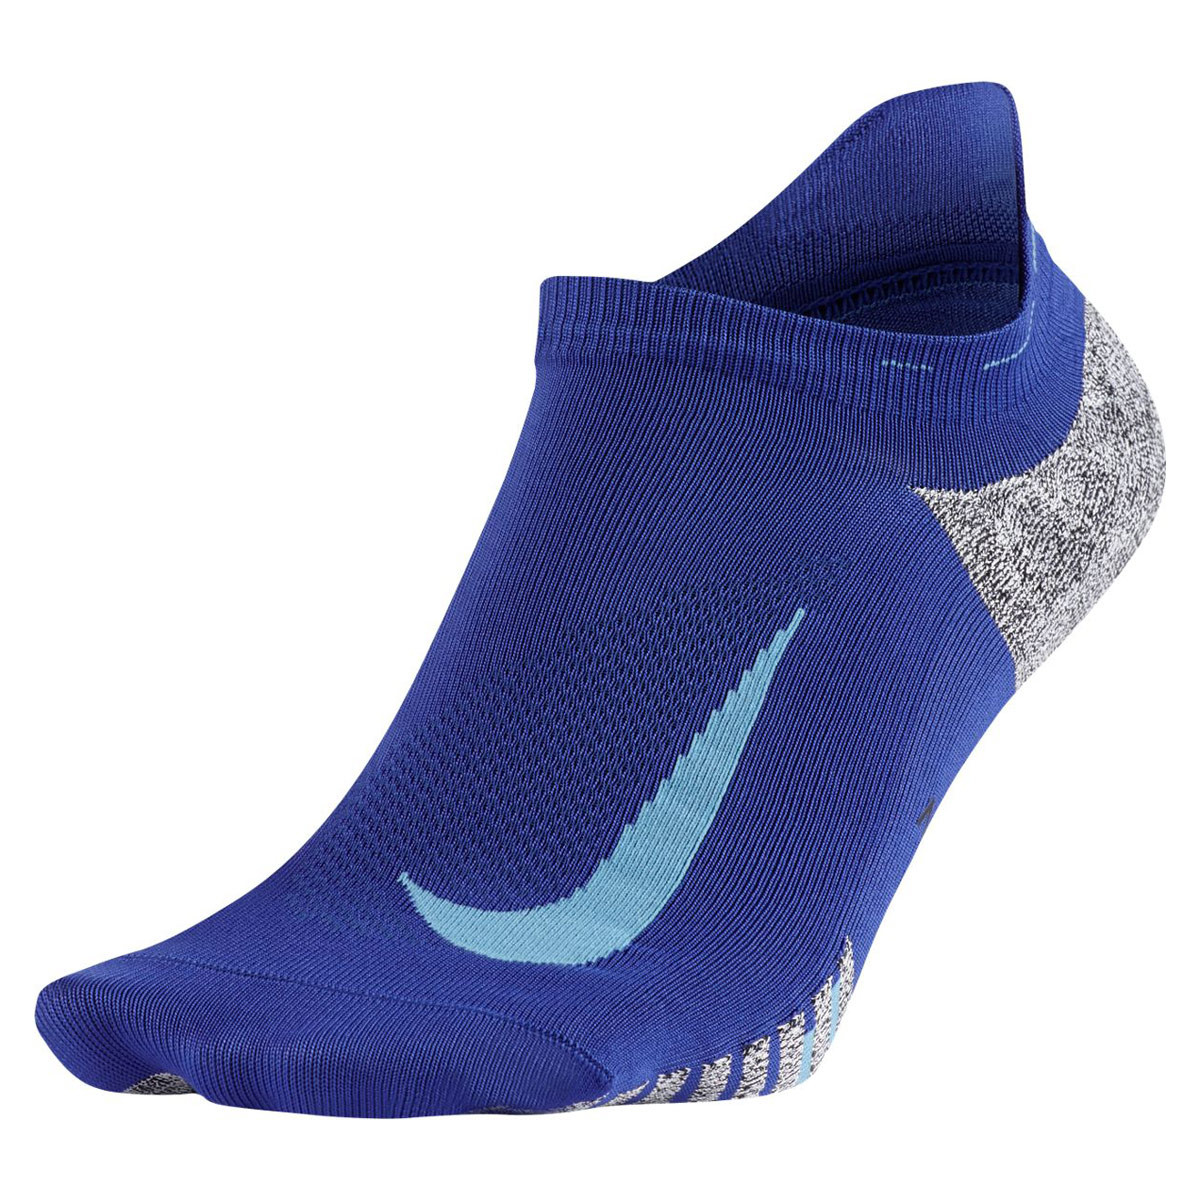 571c7ce4 Nike Elite Lightweight No-Show Running Sock - Running socks - Blue | 21RUN